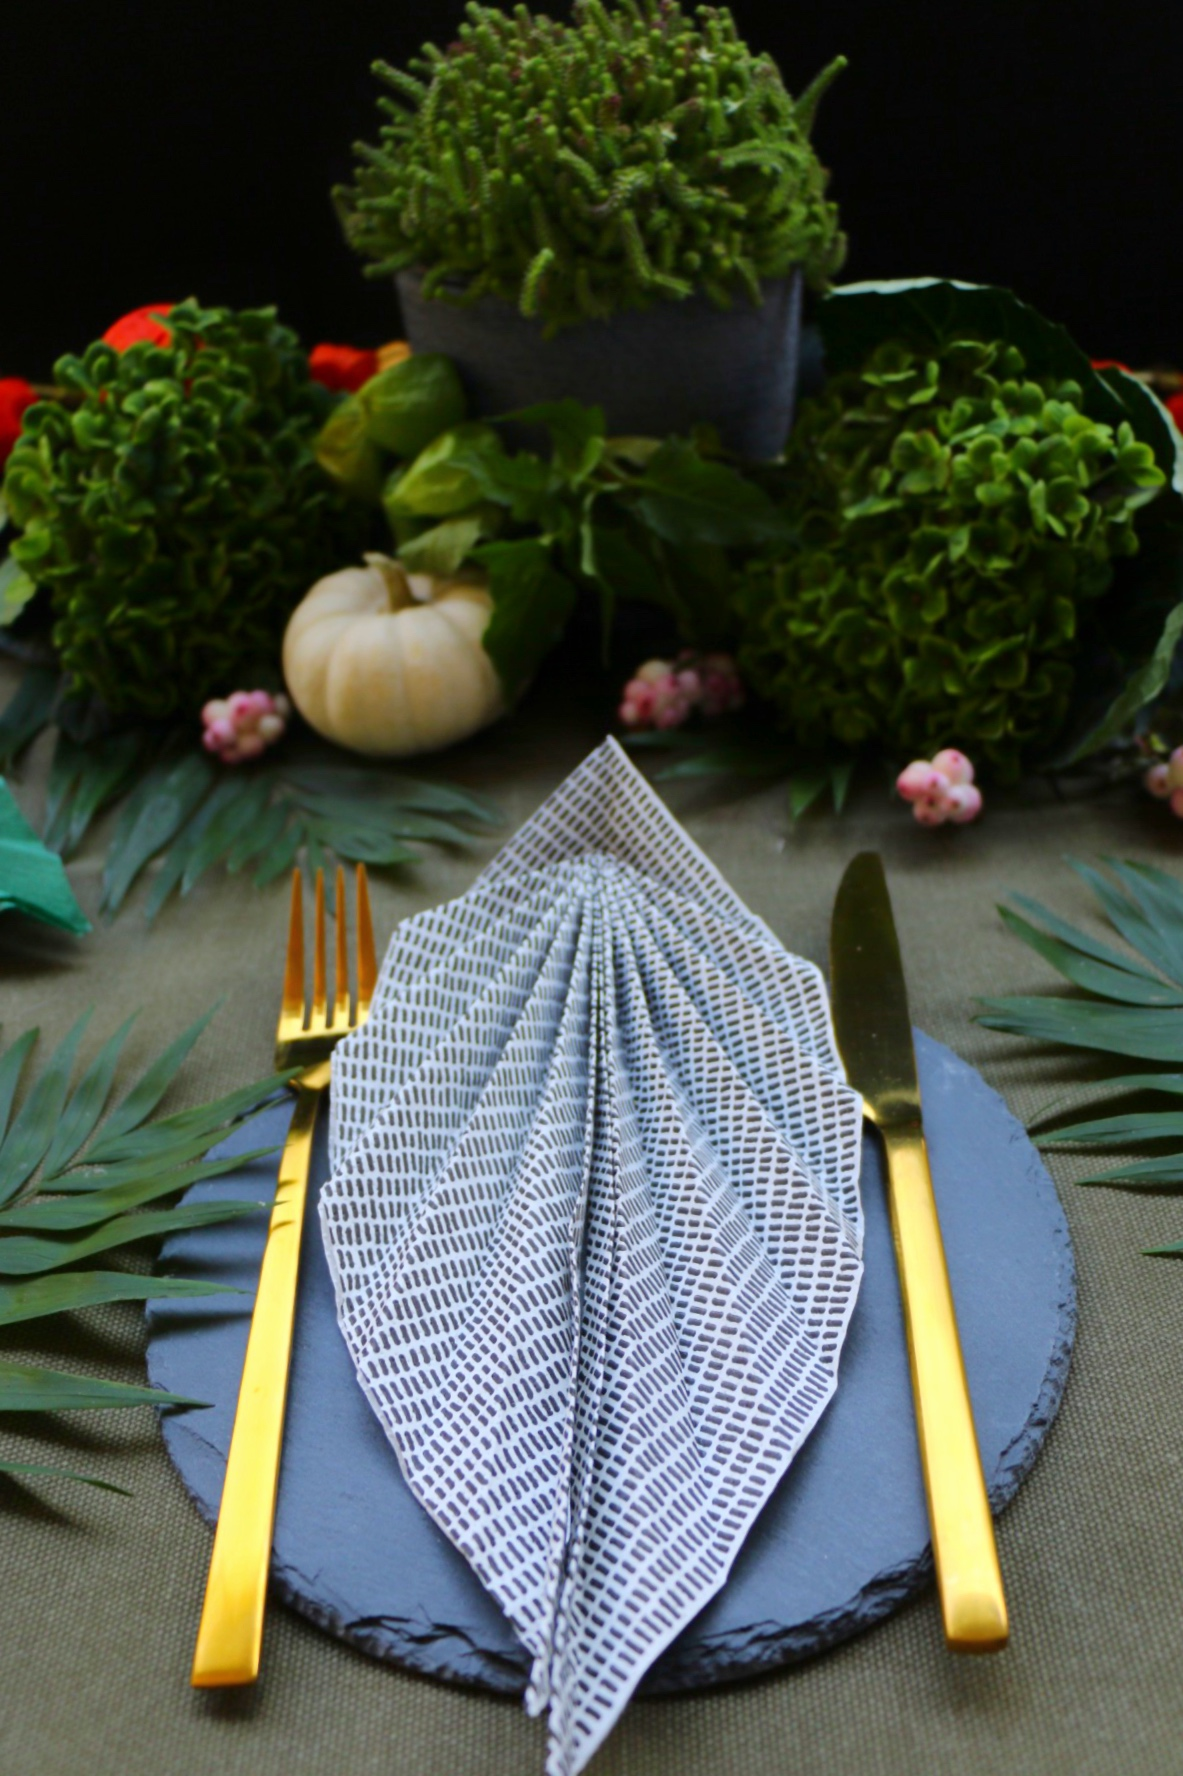 Urban Jungle Table Setting - Servietten zu Blatt falten by eat blog love